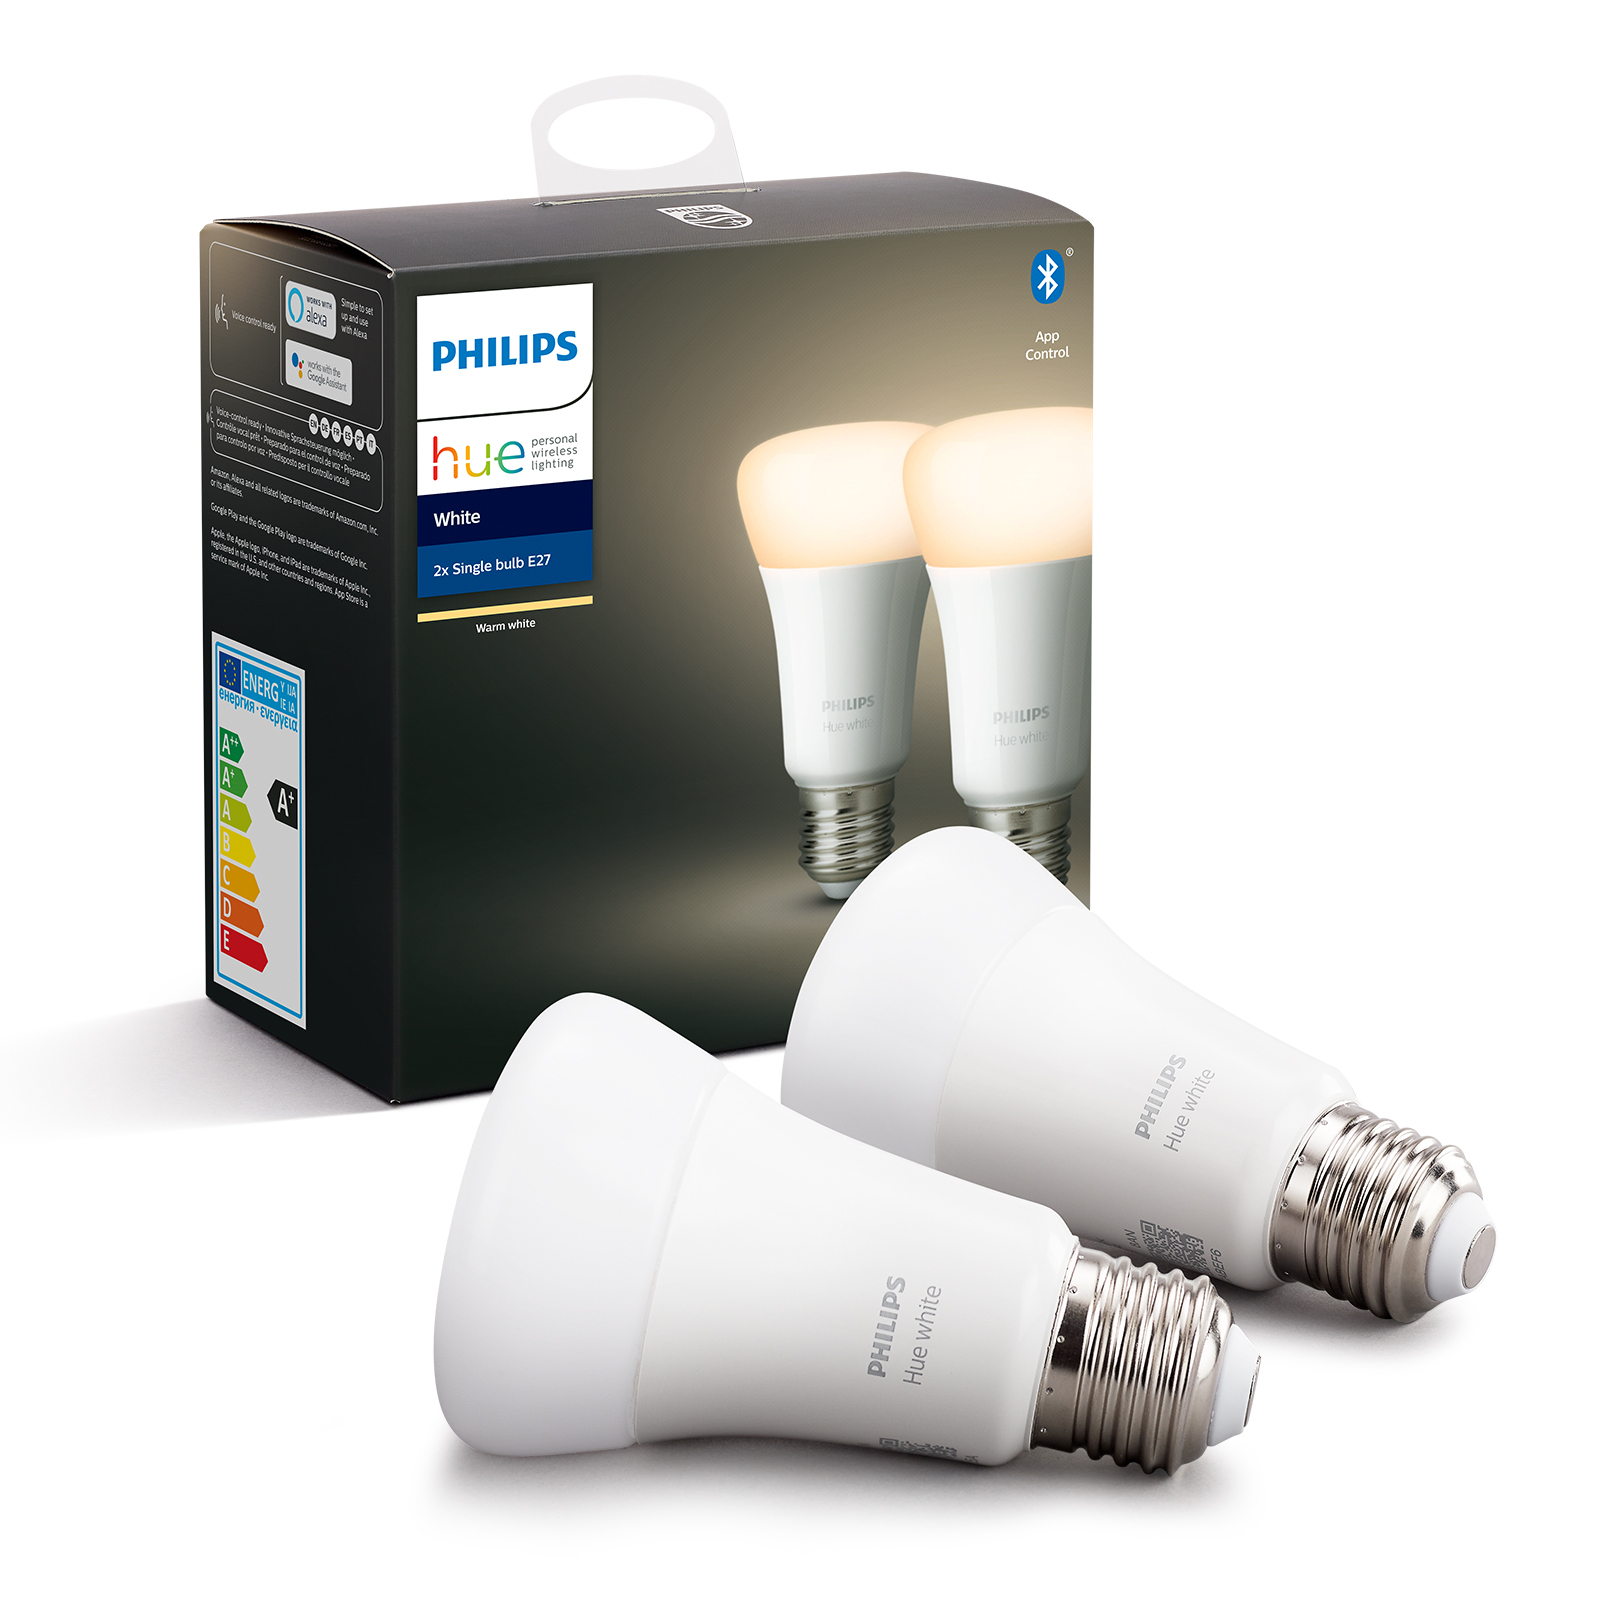 Philips Hue White 9 W E27 LED-Lampe, 2er-Set